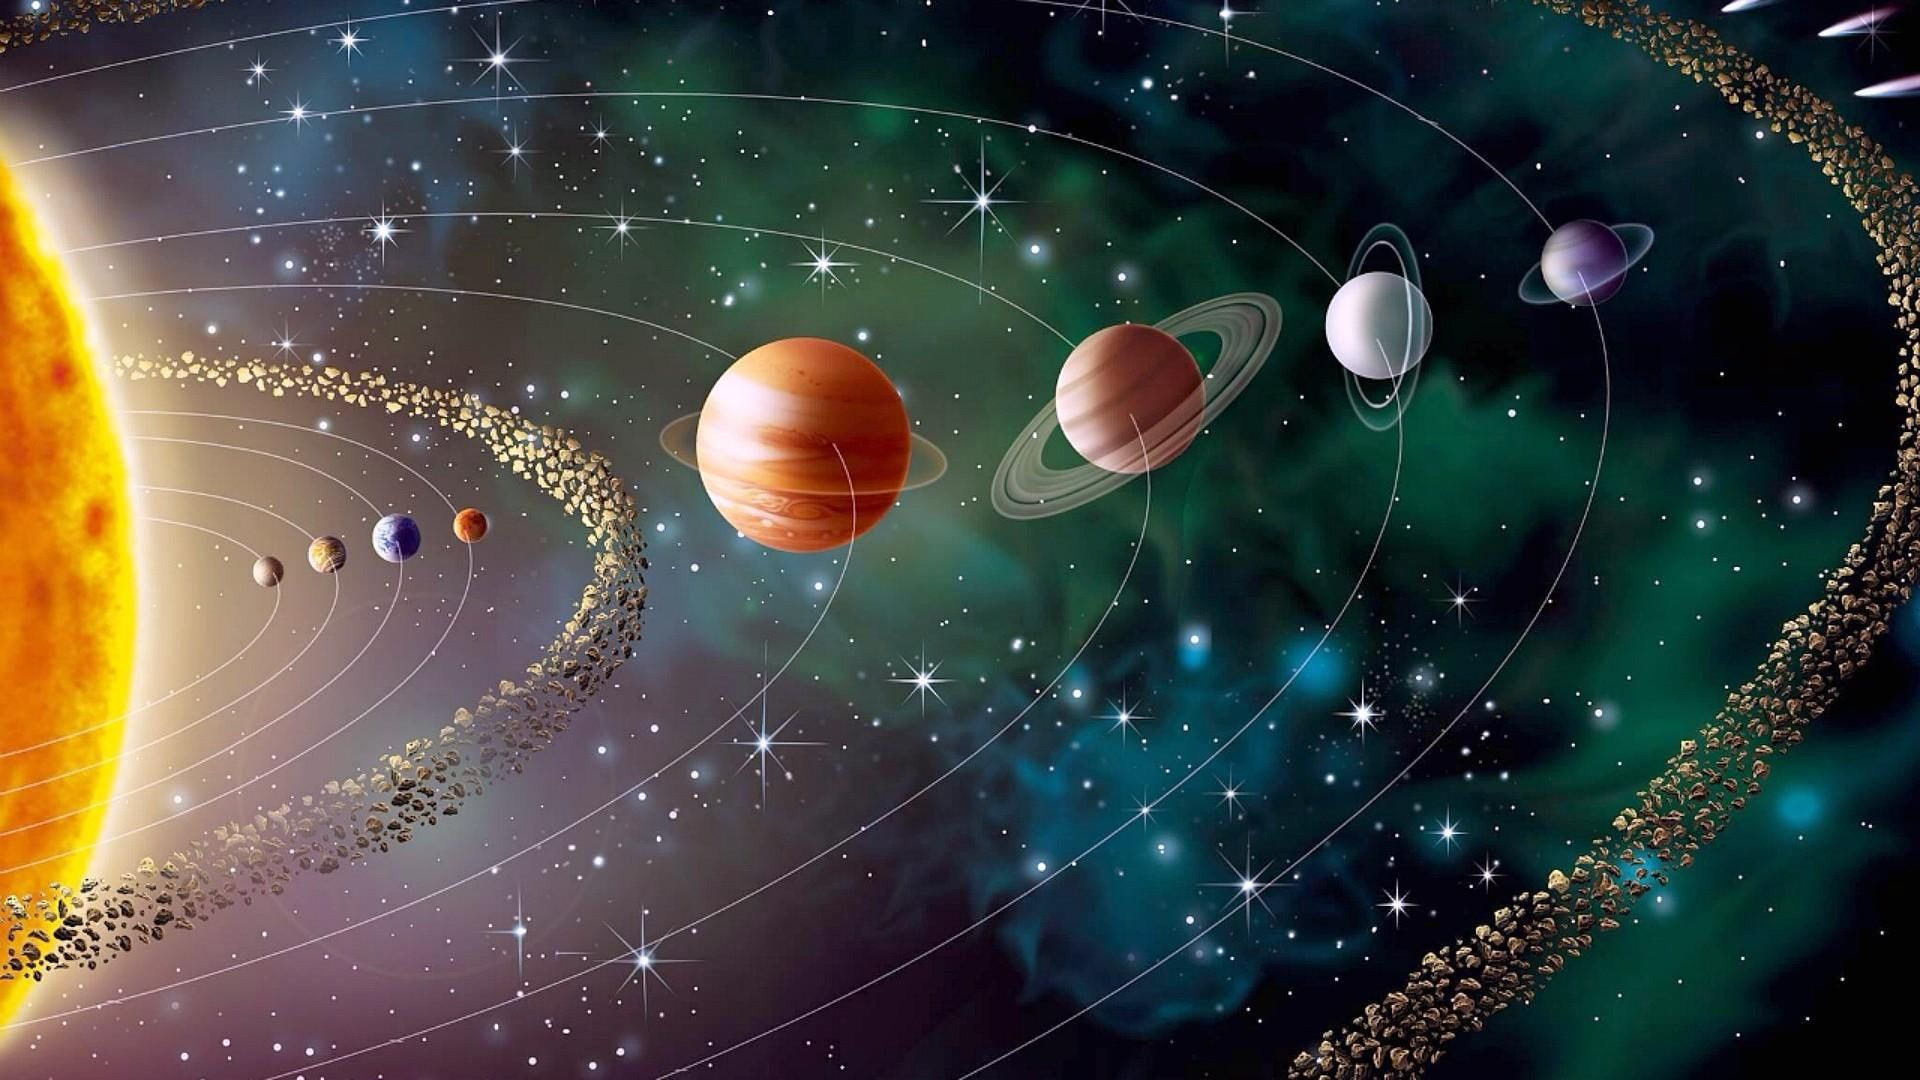 Solar System Digital Wallpaper Space Earth Sun Solar System Planets Universe 1080p Wallpaper Solar System Wallpaper System Wallpaper Digital Wallpaper